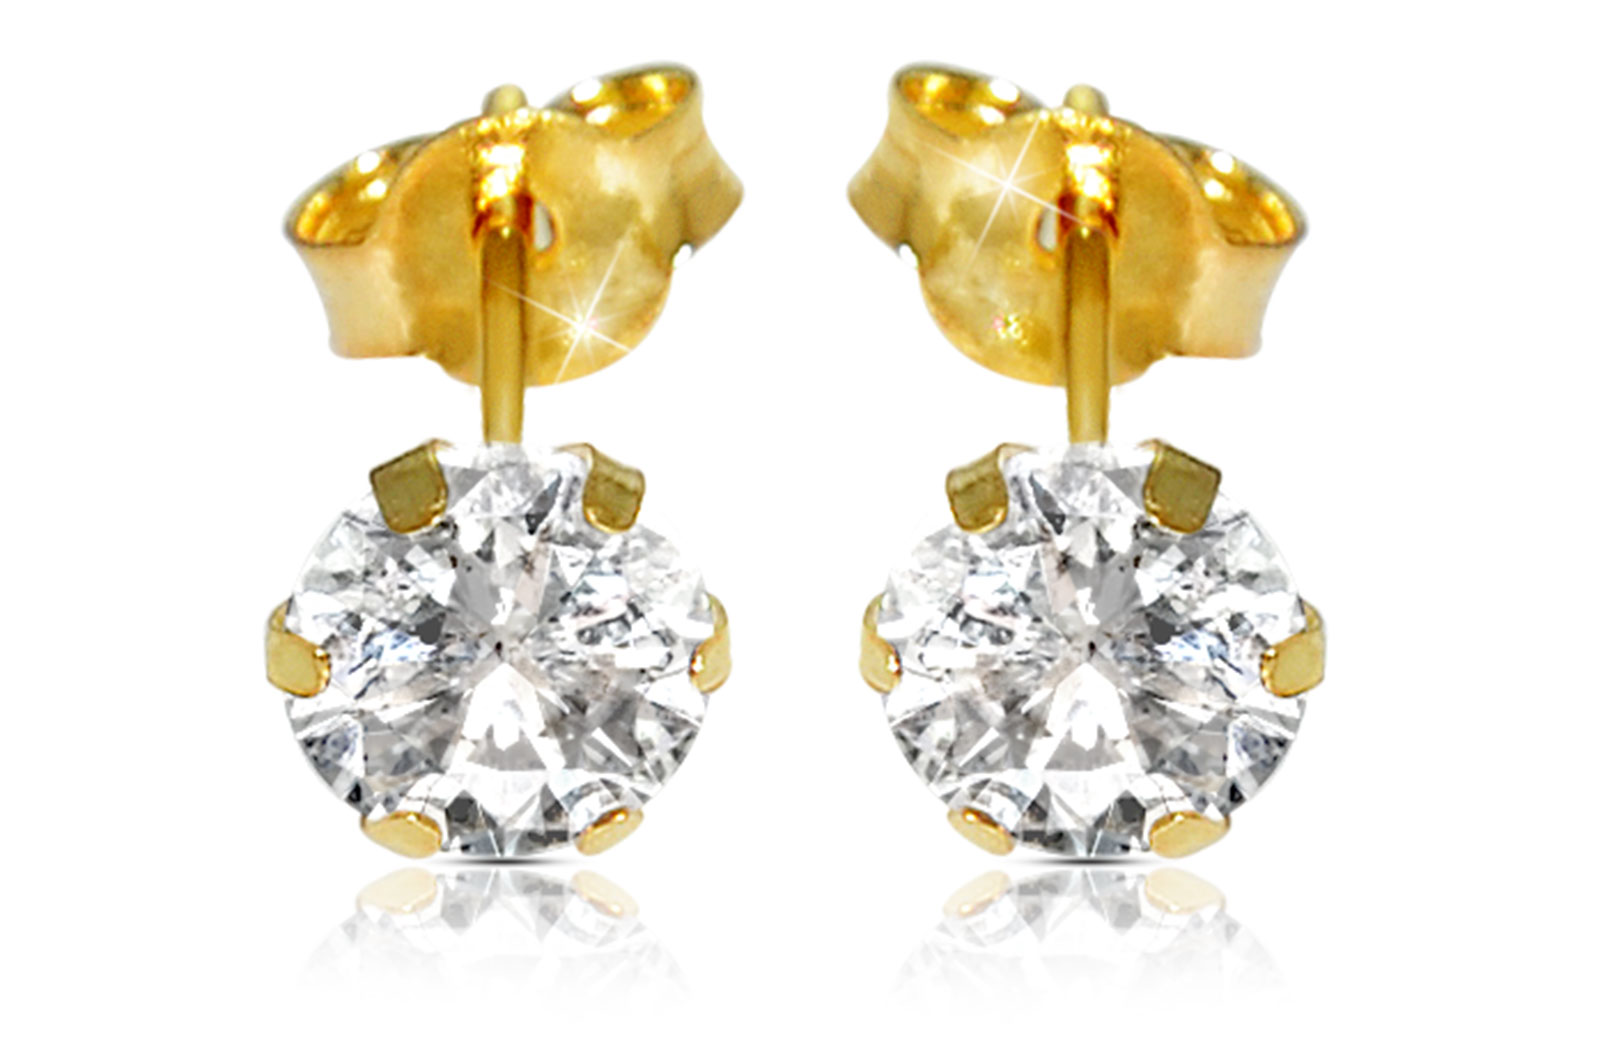 Vera Perla 18K Solid Yellow Gold and 4mm Cubic Zirconia Earrings